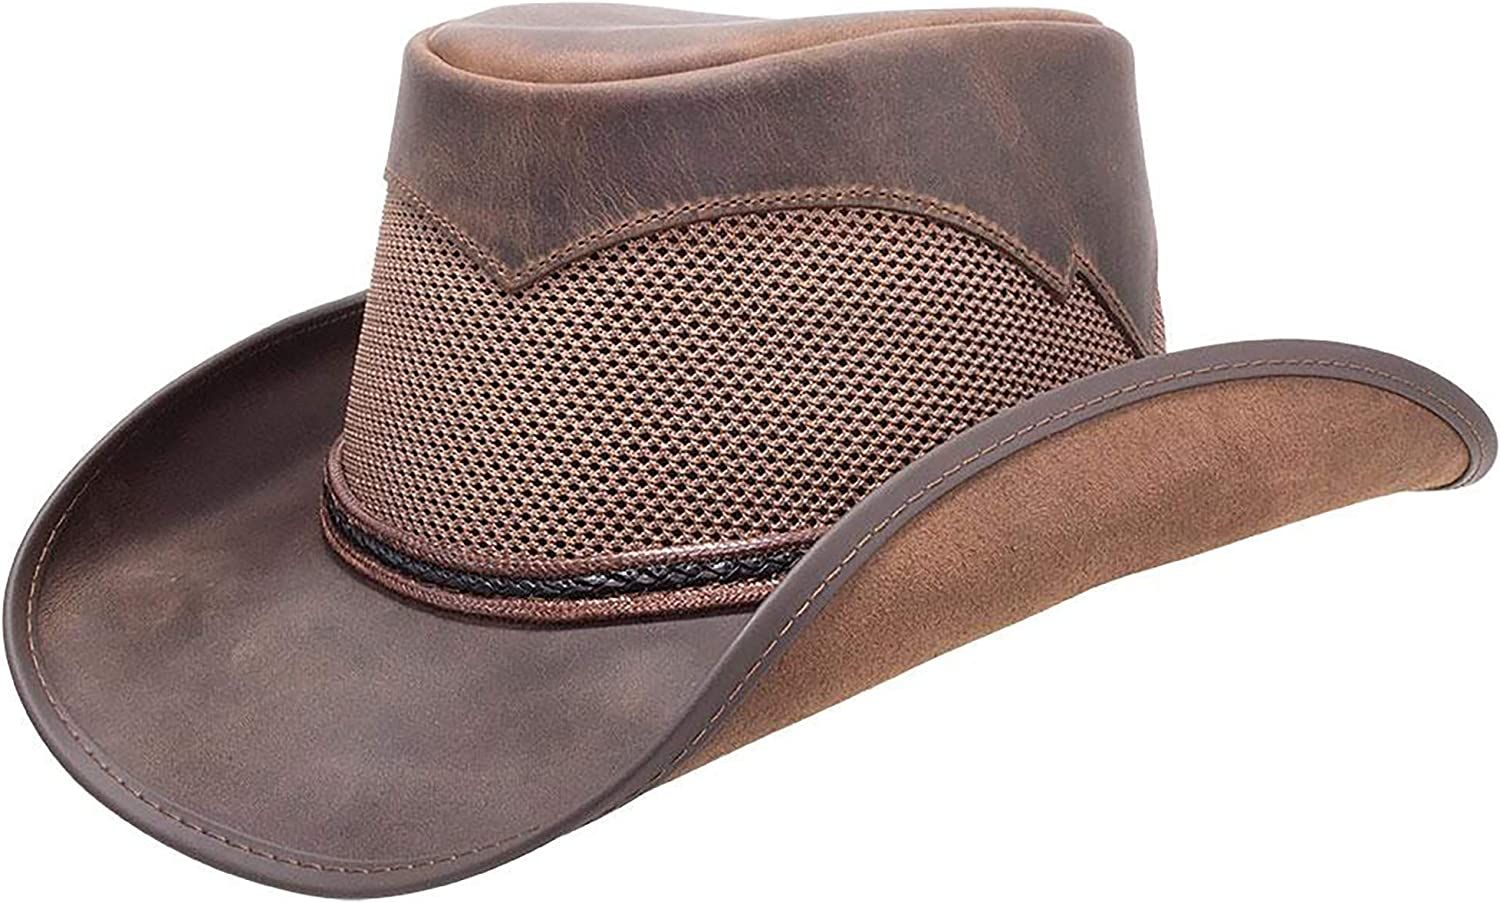 American Hat Makers Durango Leather Mesh Cowboy Hat — Handcrafted, Breathable